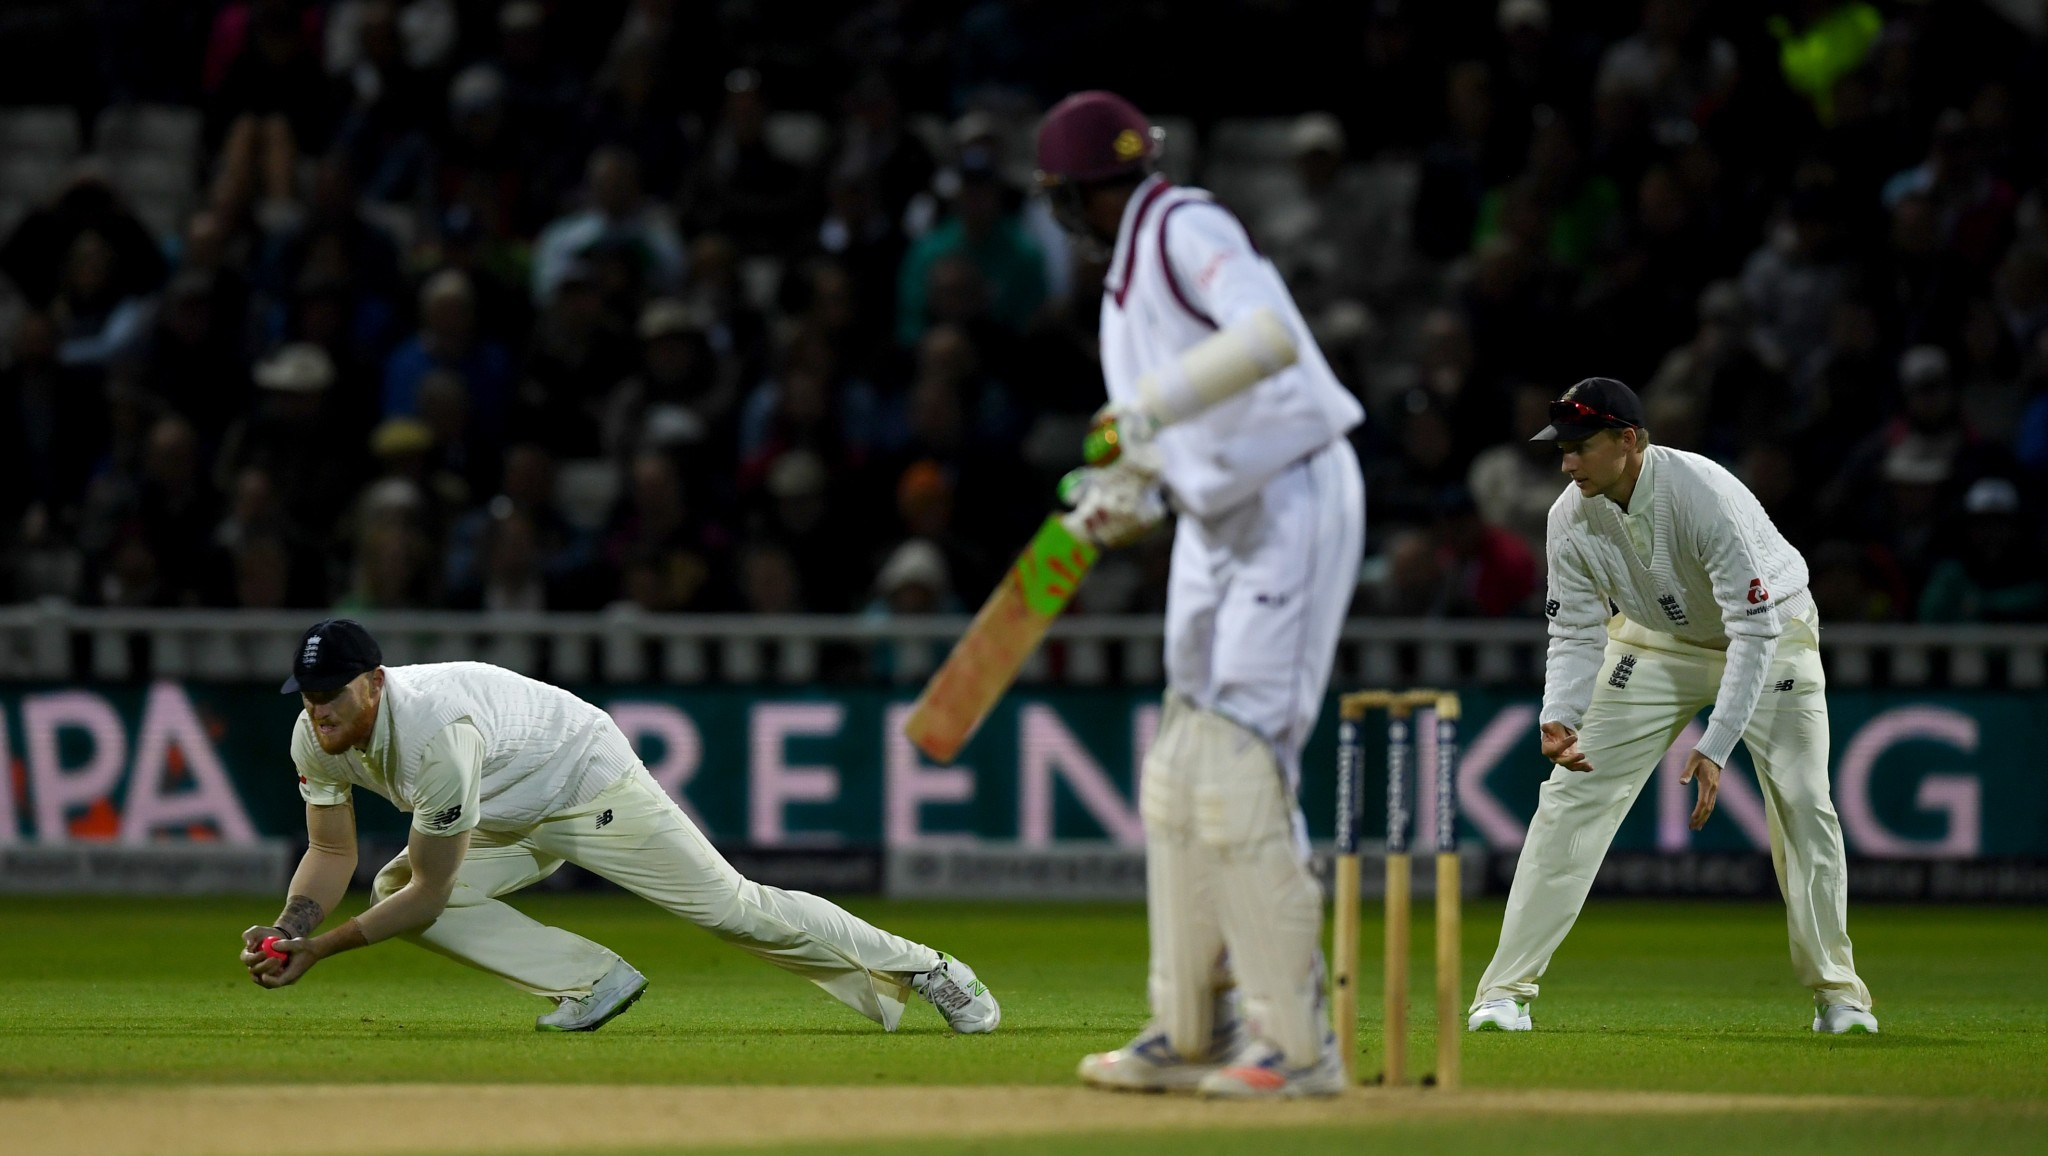 Edgbaston has held the first day/night Test match to take place in England ©Getty Images